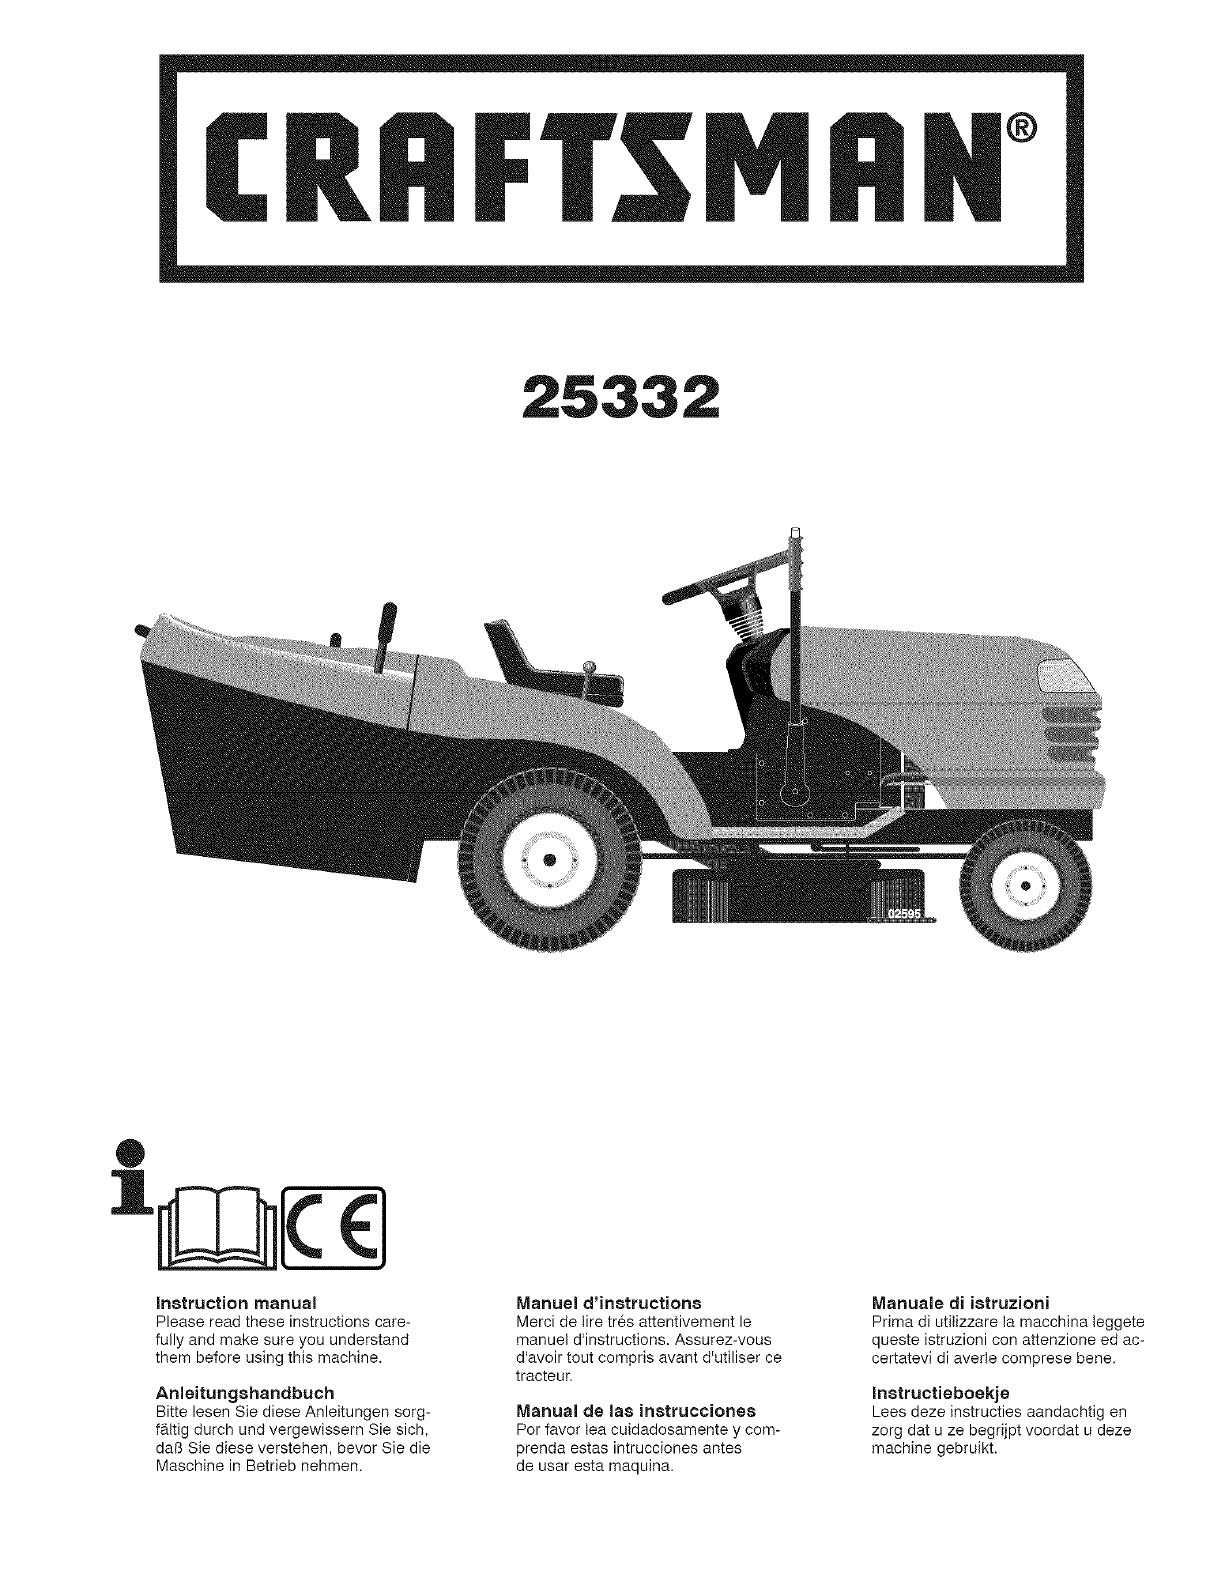 Il Tappeto Volante Wiki Craftsman 917253320 User Manual Tractor Manuals And Guides L0803332